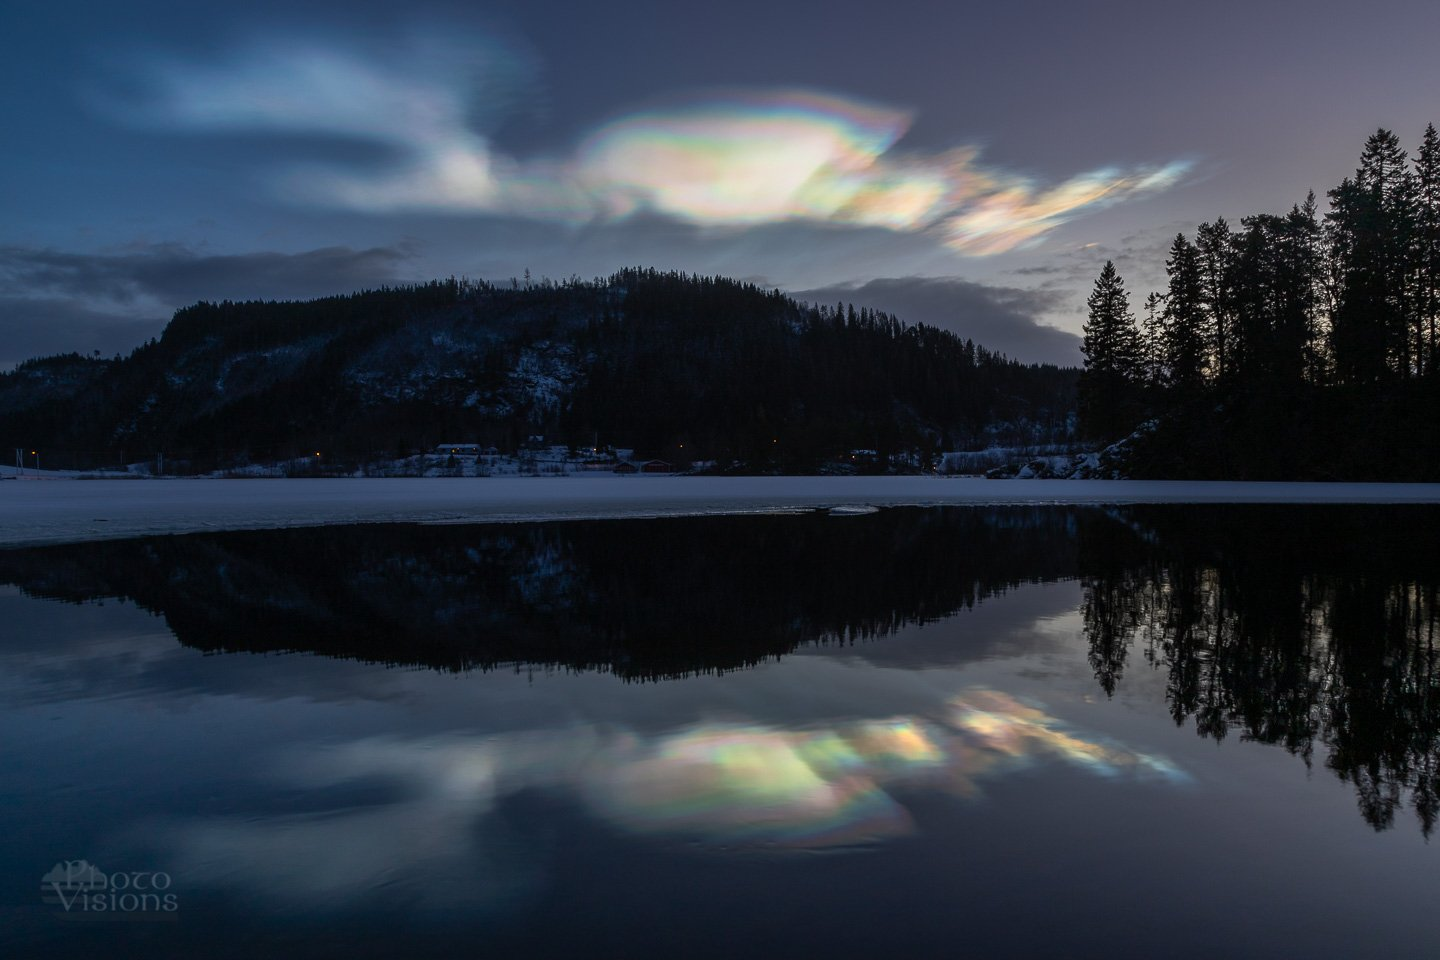 clouds,sky,night,norway,polar stratospheric clouds,reflections,landscape,, Szatewicz Adrian